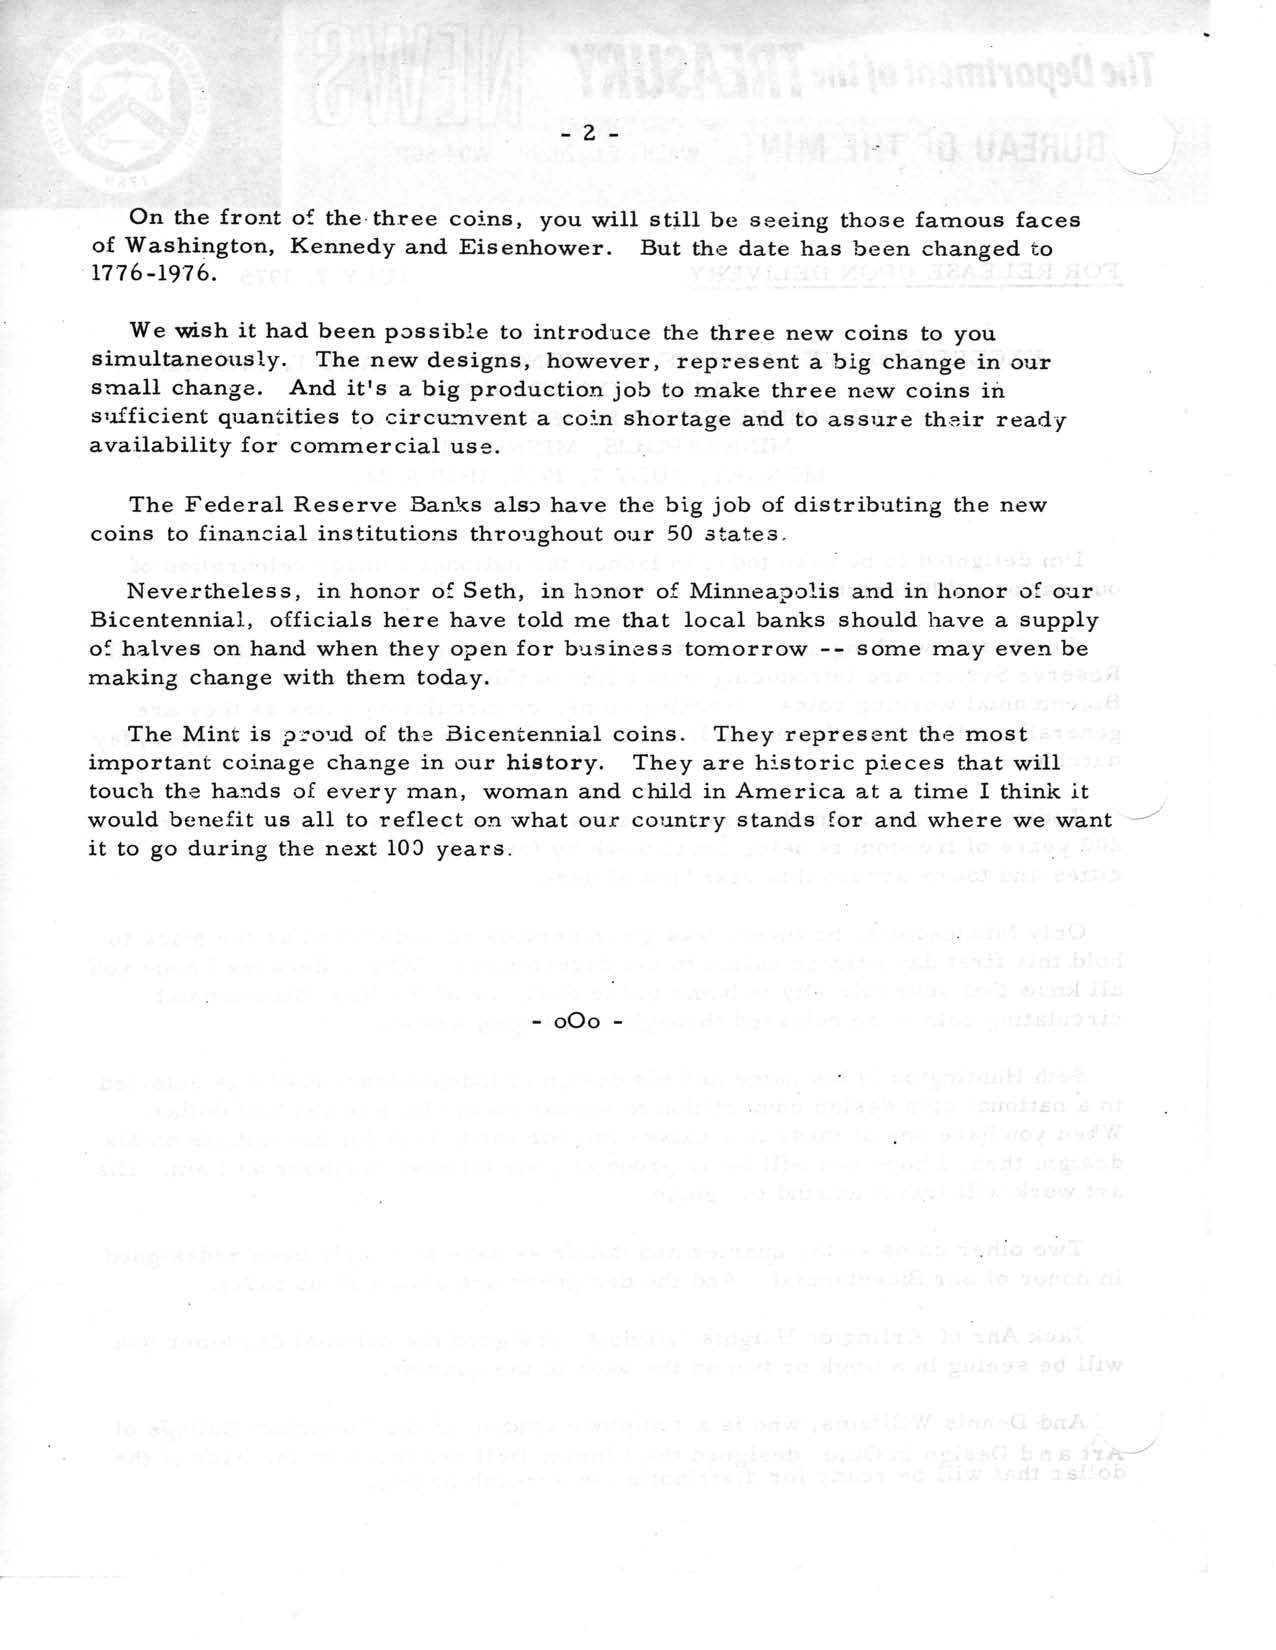 Historic Press Release: National Coinage Celebration, Page 2